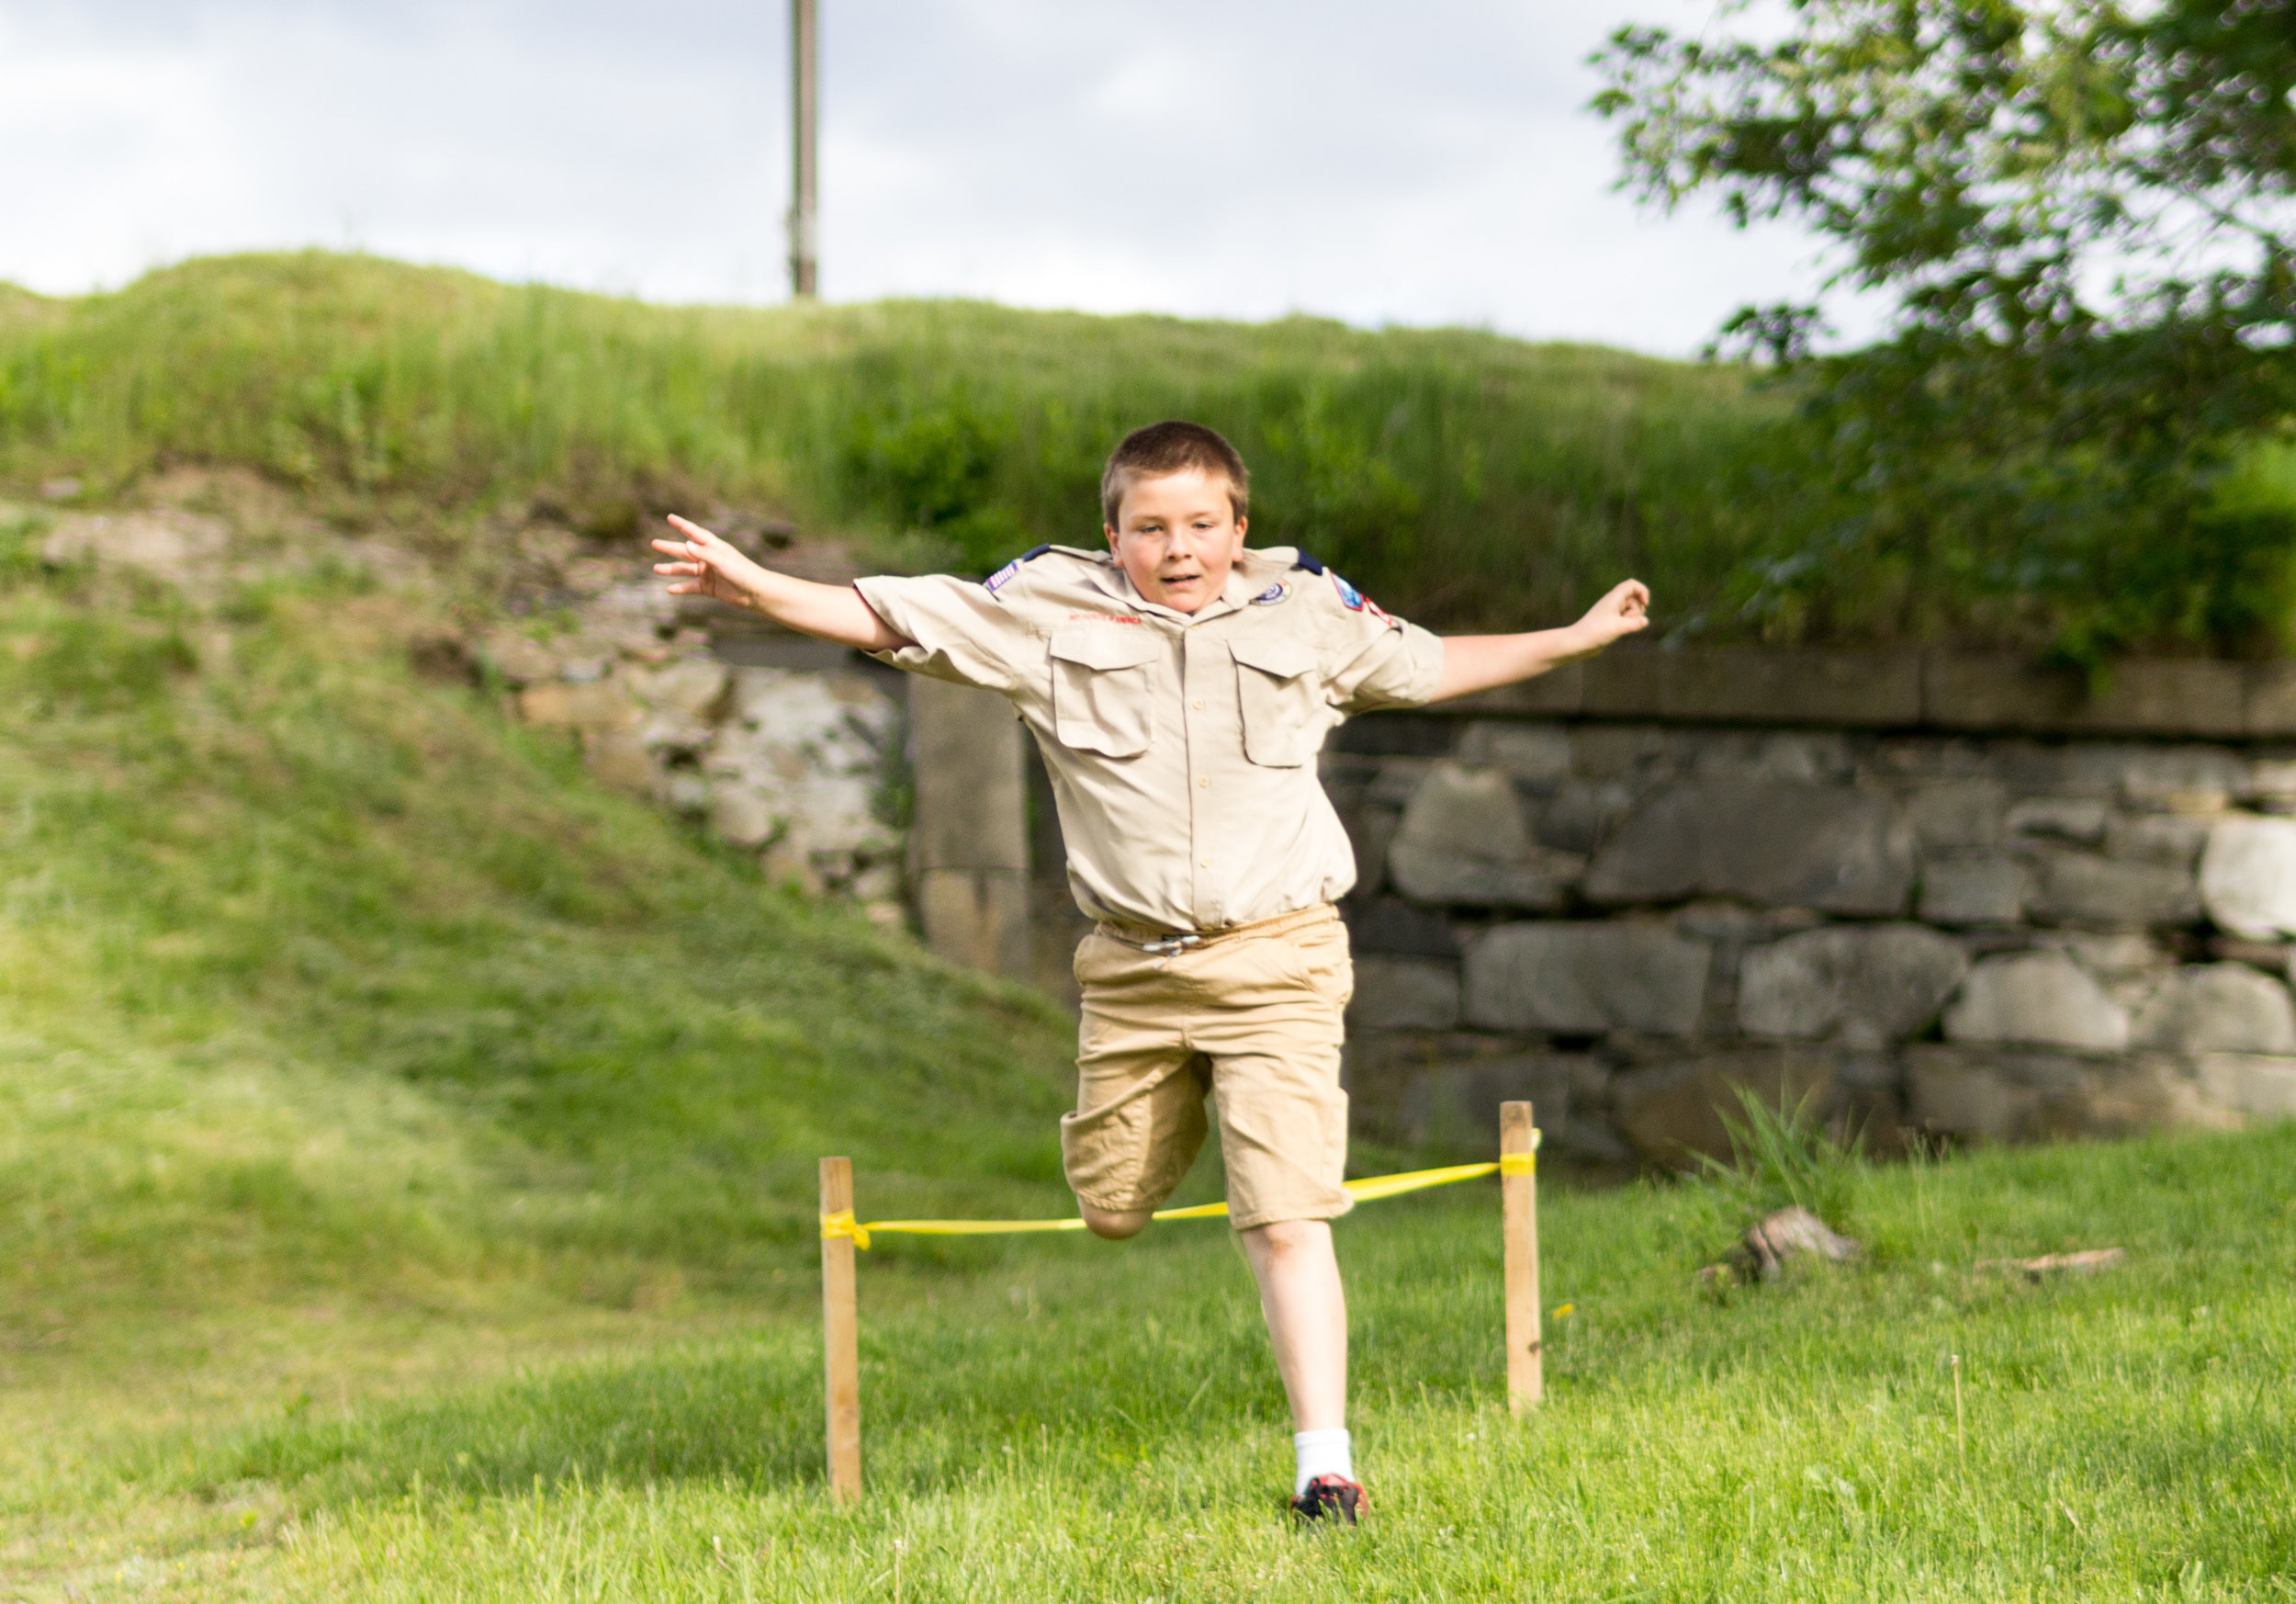 Cub Scouts Obstacle Course_14.jpg